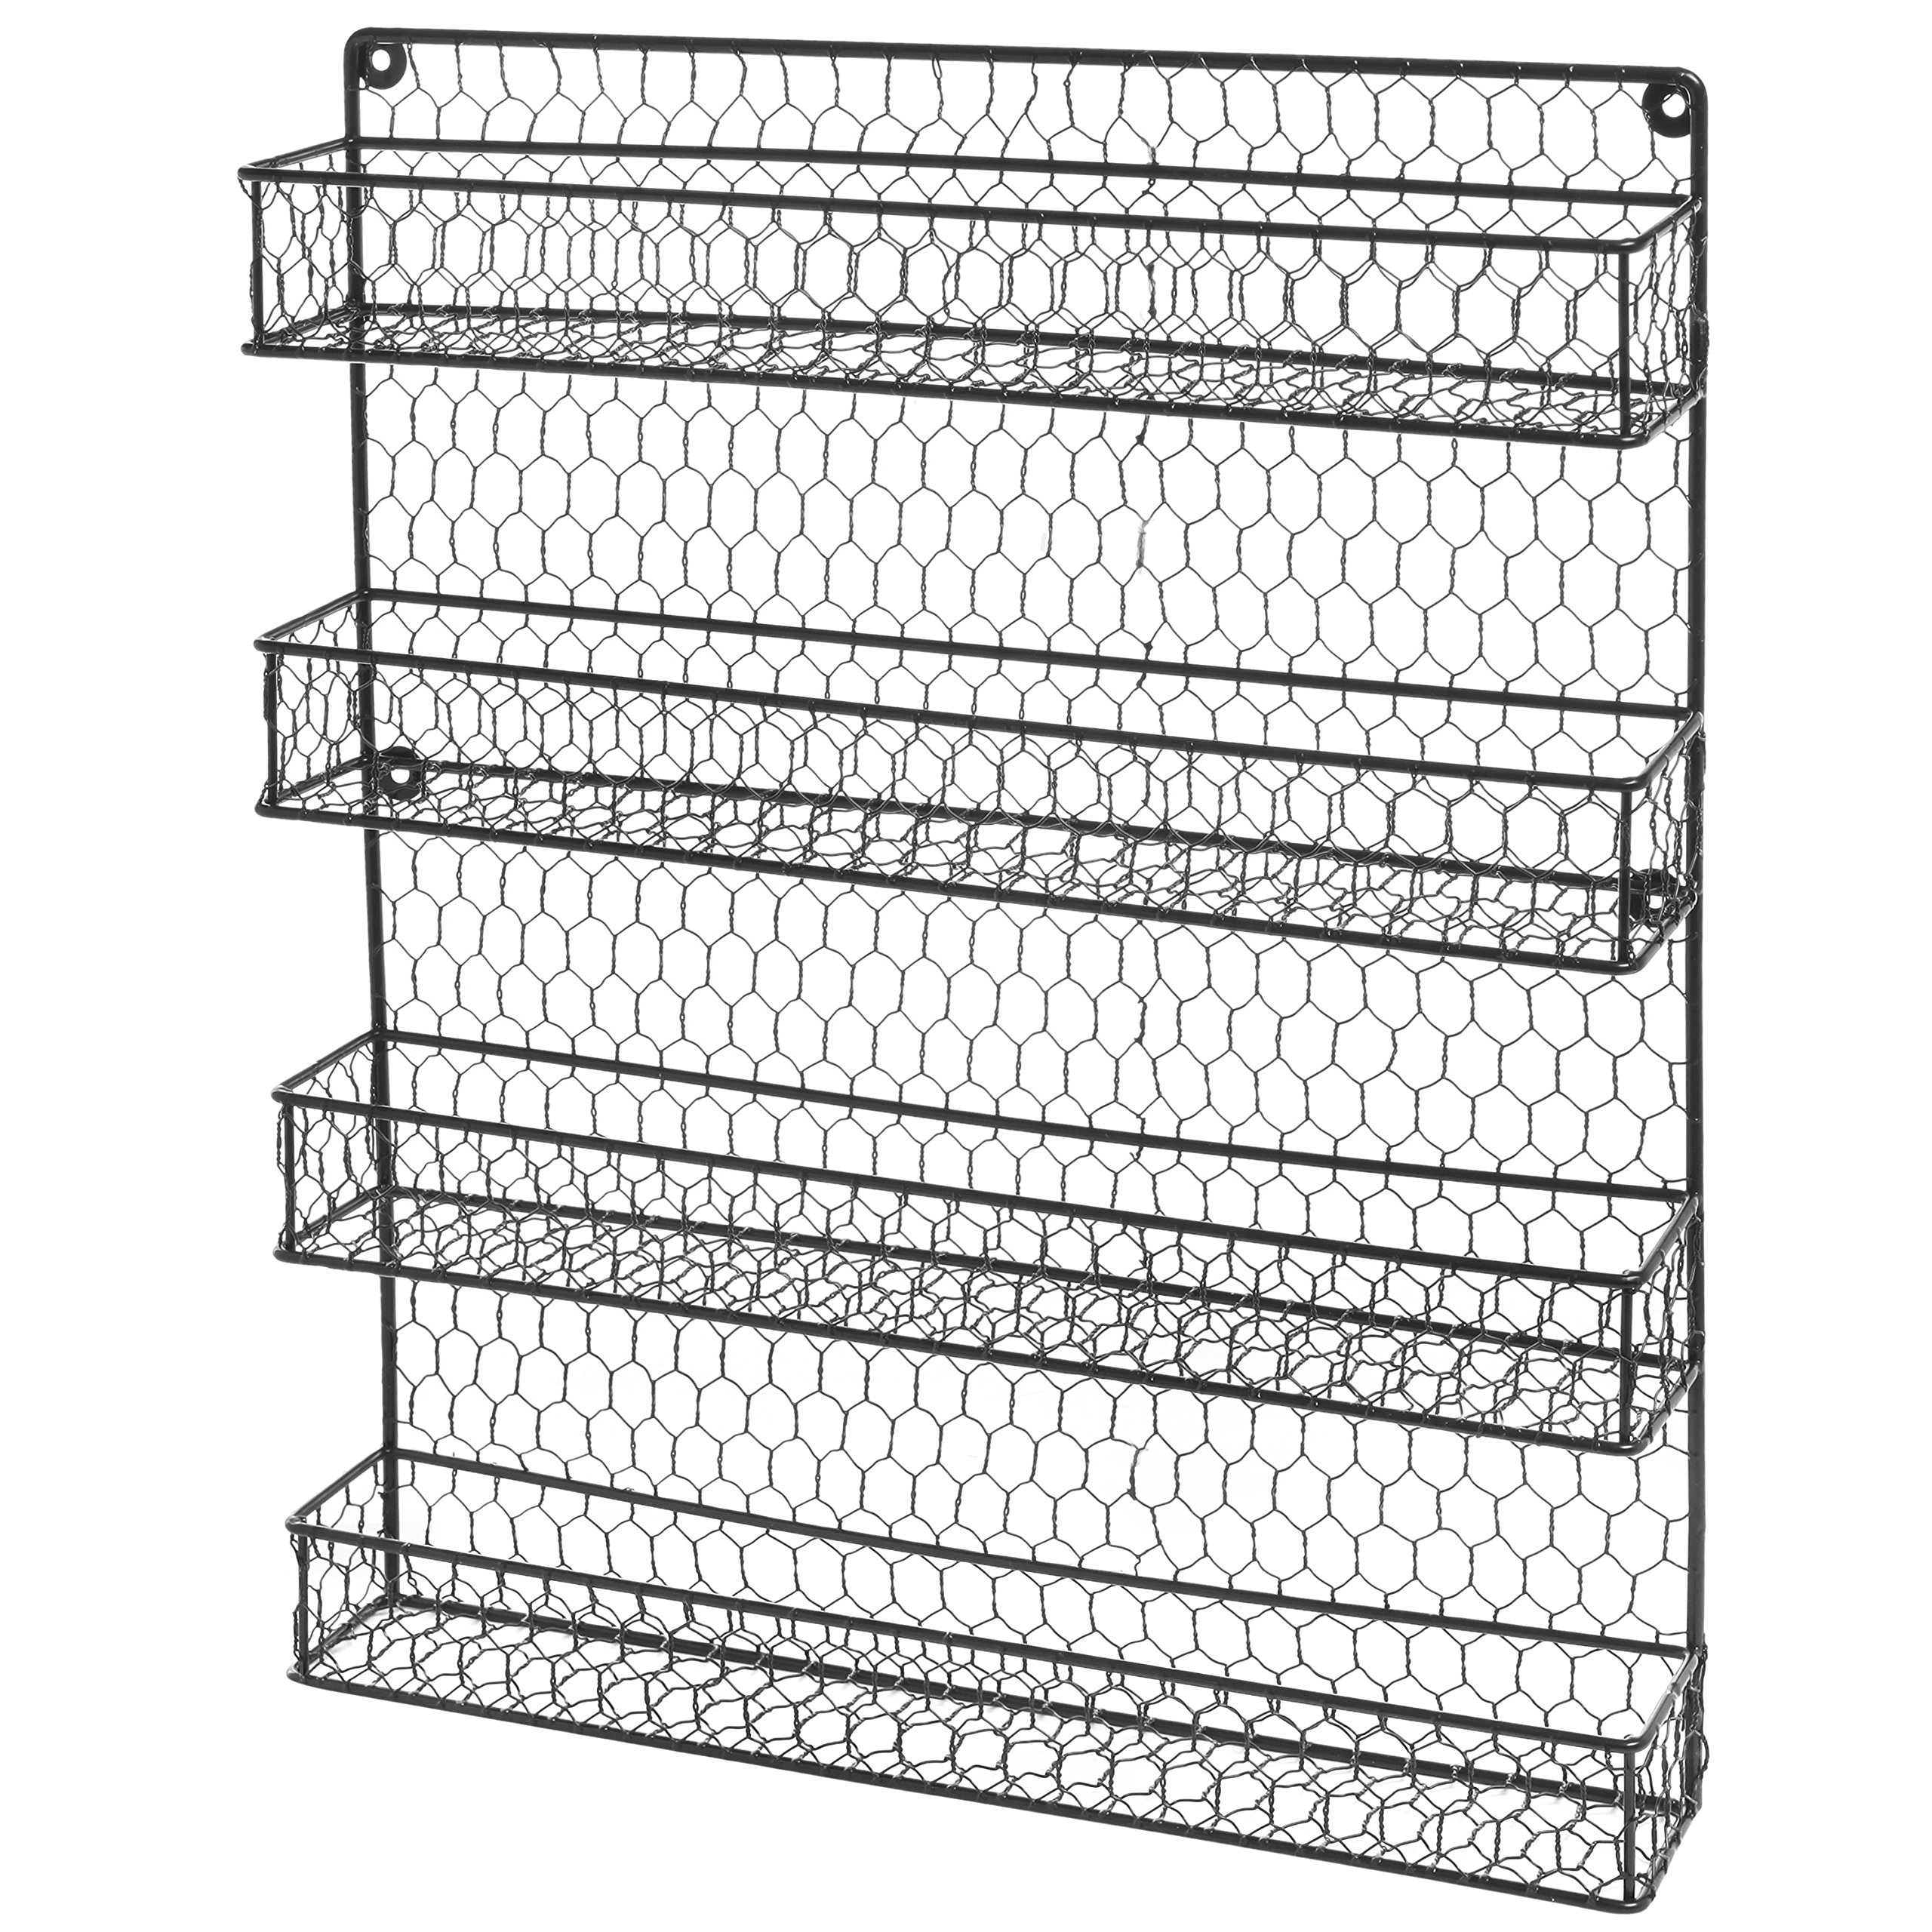 4 Tier Black Country Rustic Chicken Wire Pantry, Cabinet or Wall Mounted Spice Rack Storage Organizer by MyGift (Image #3)